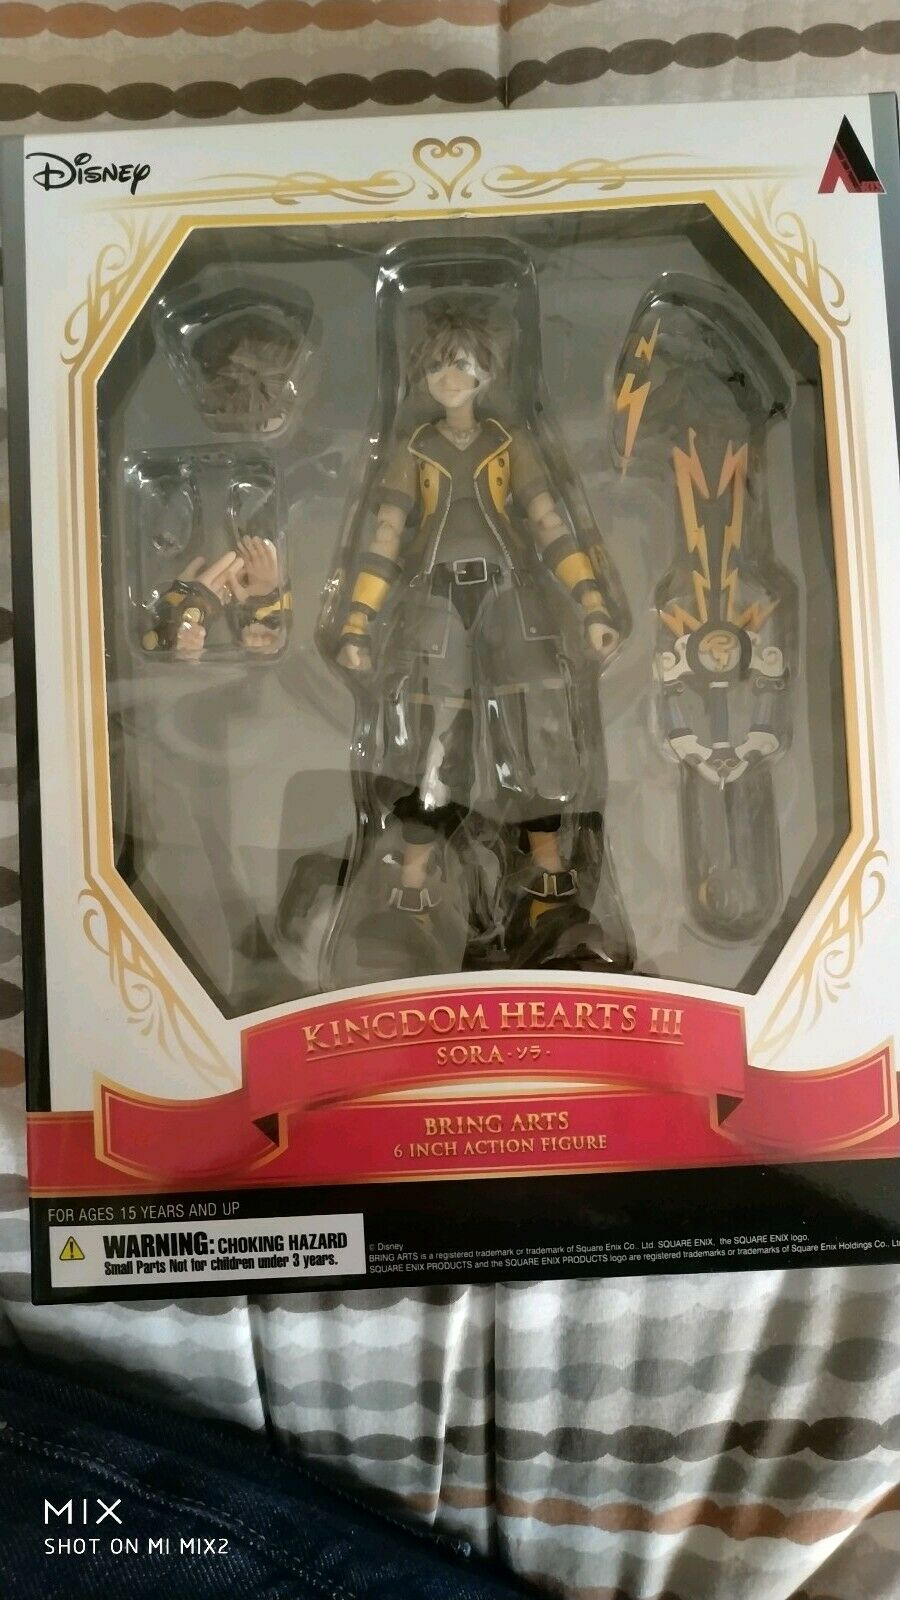 rossoom Hearts 3  bring Arts Limited Sora Guardian forma nuovo  vendita outlet online